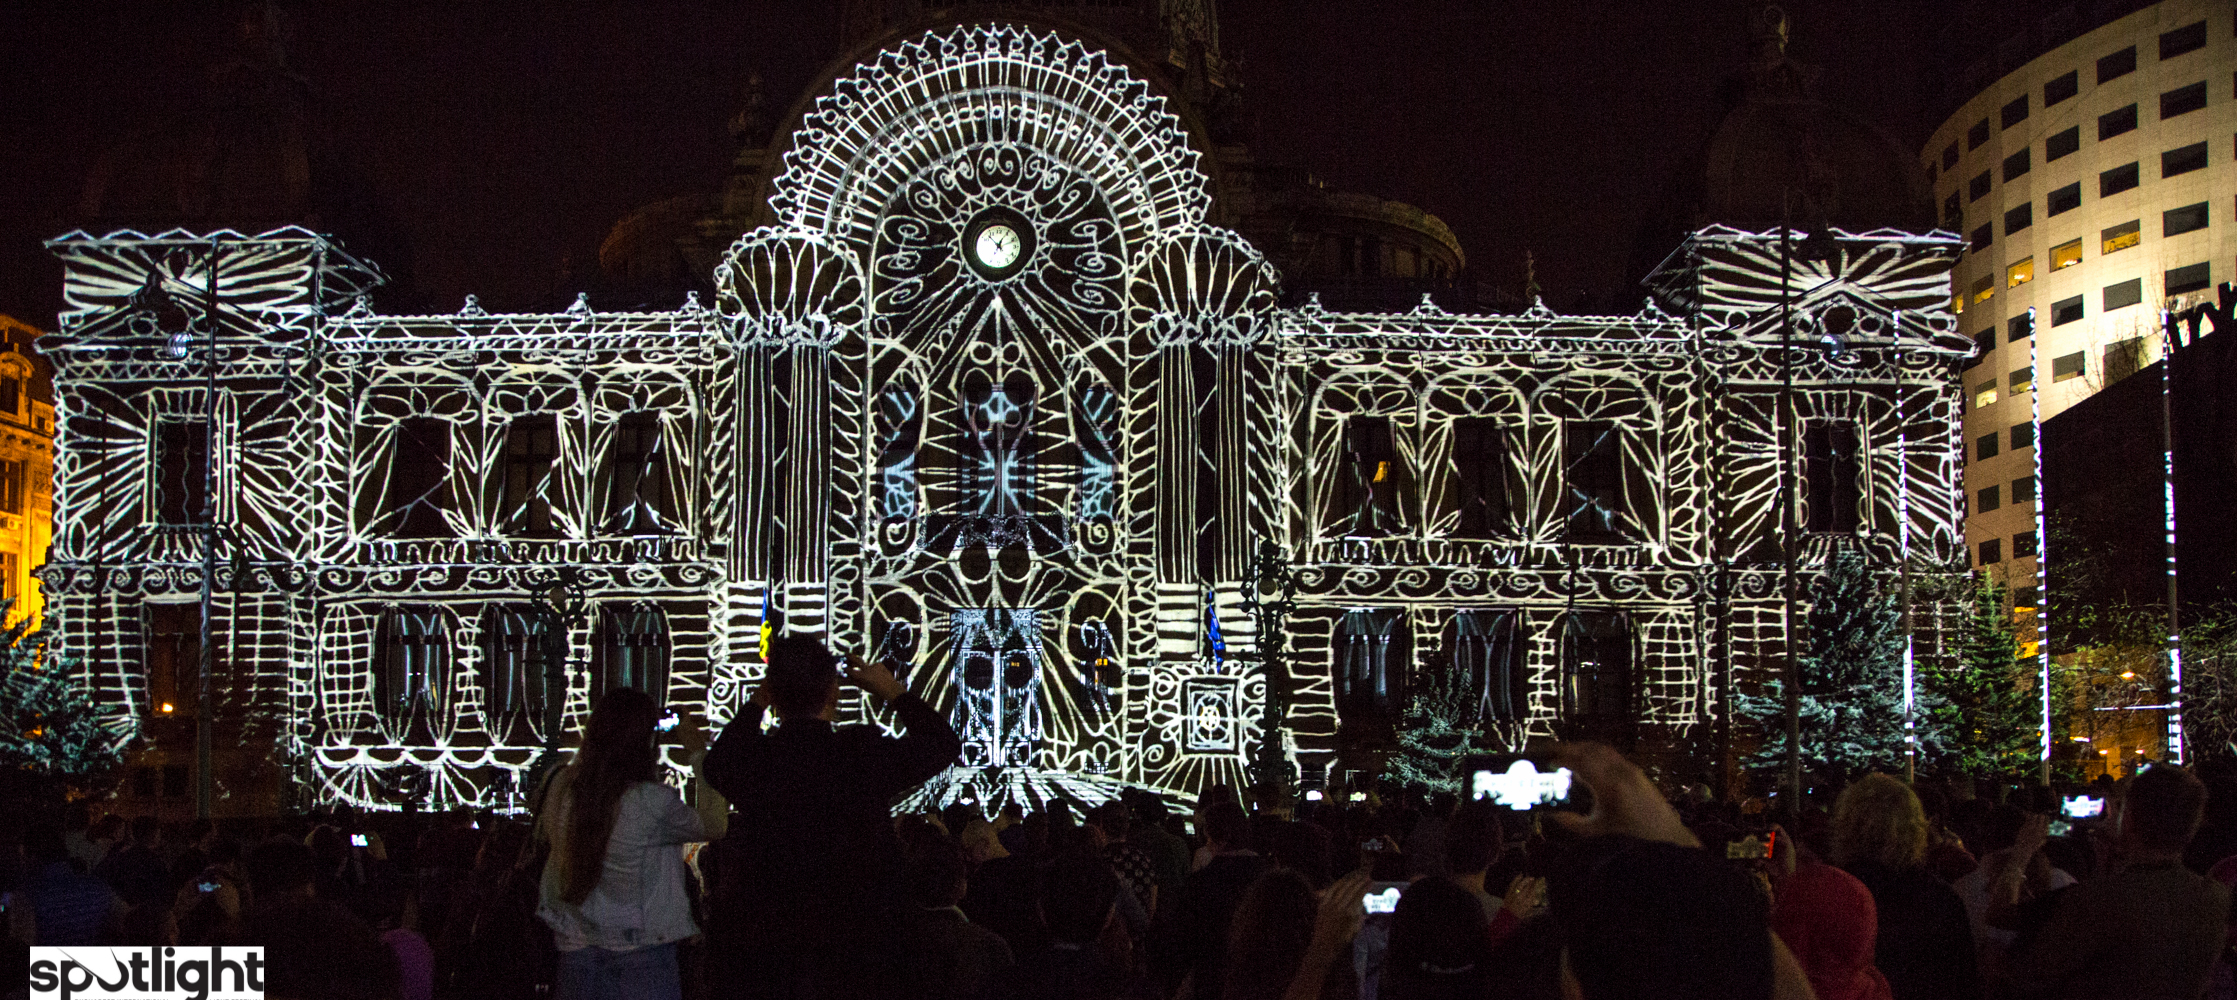 SPOTLIGHT VIDEO MAPPING CONTEST